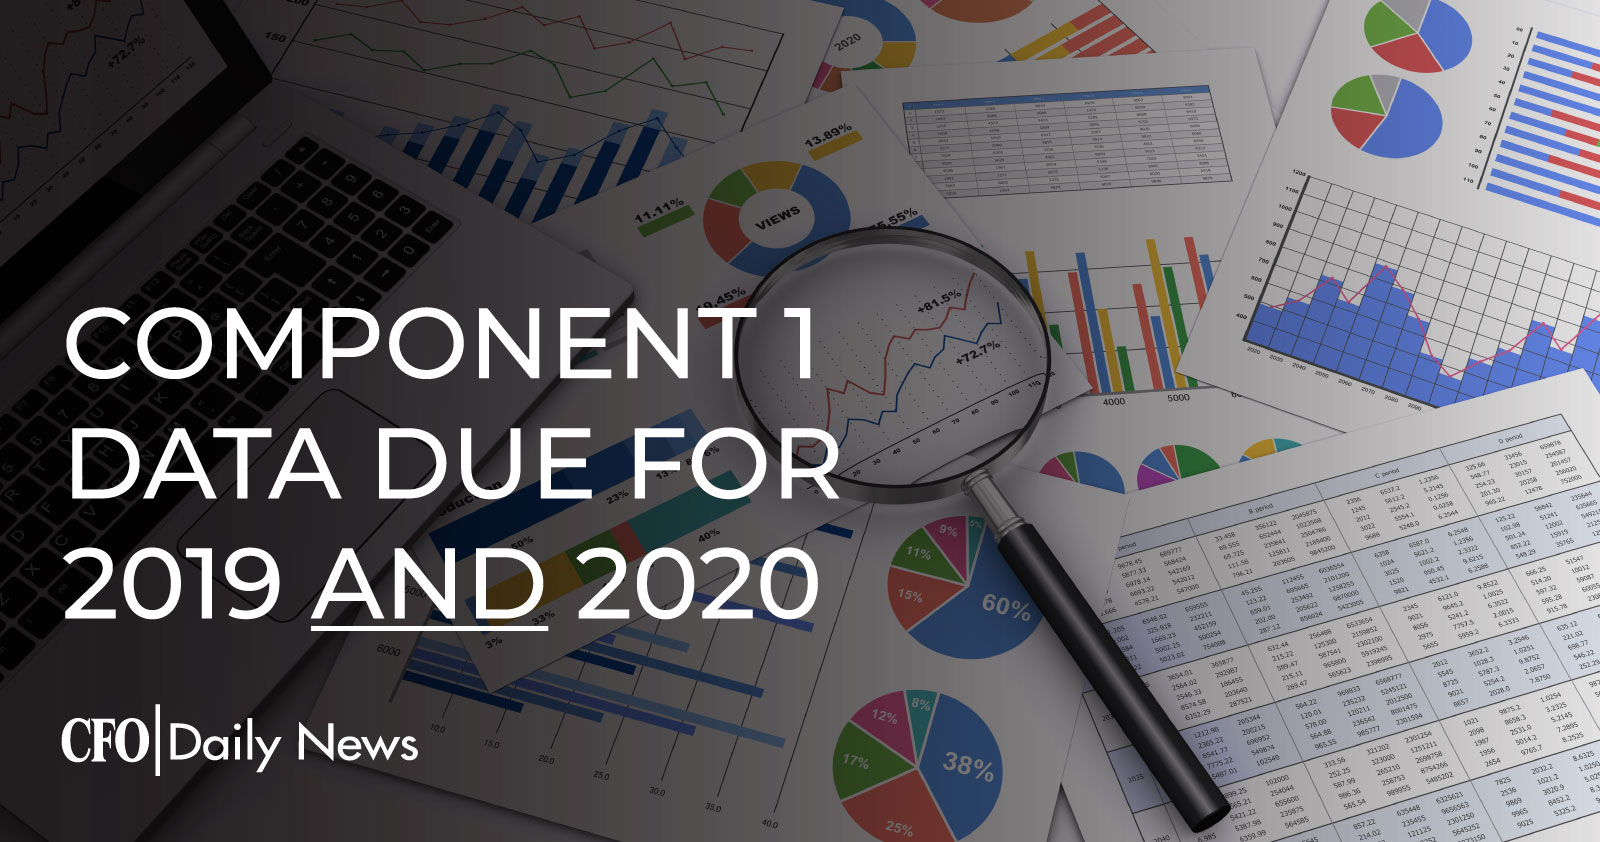 Component 1 Data Due For 2019 And 2020